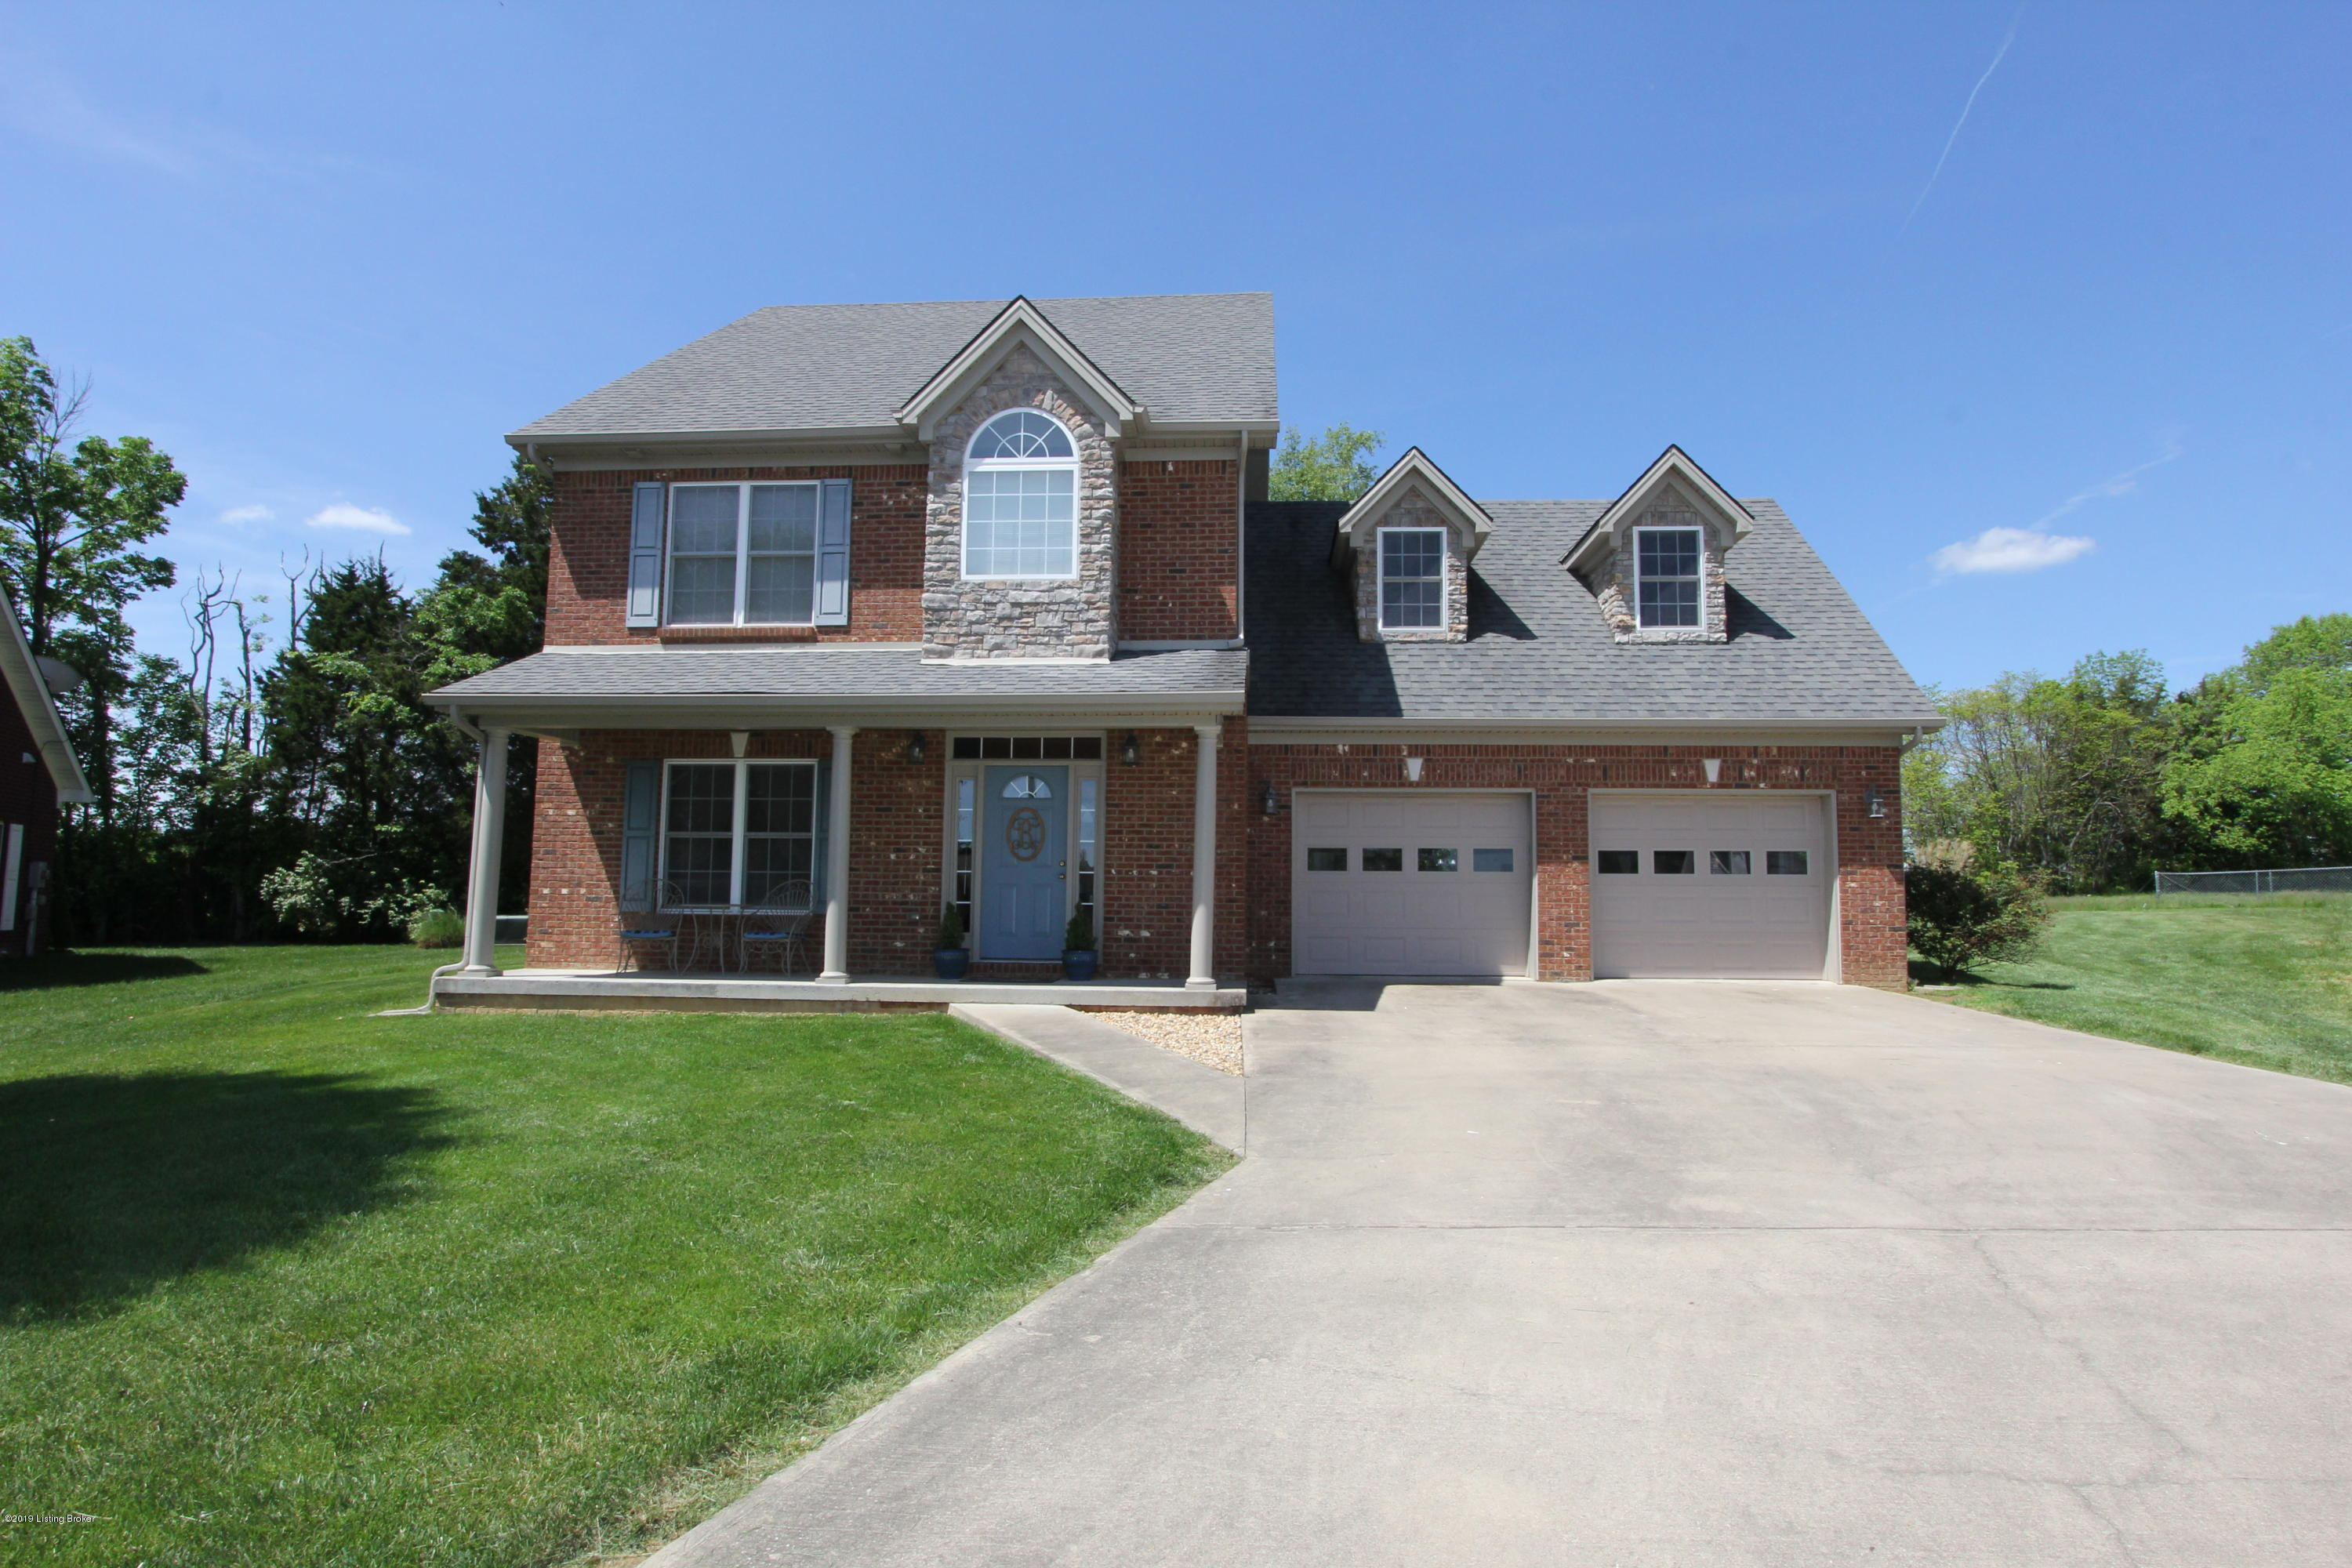 2008 Oak Hill Ct, Lawrenceburg, Kentucky 40342